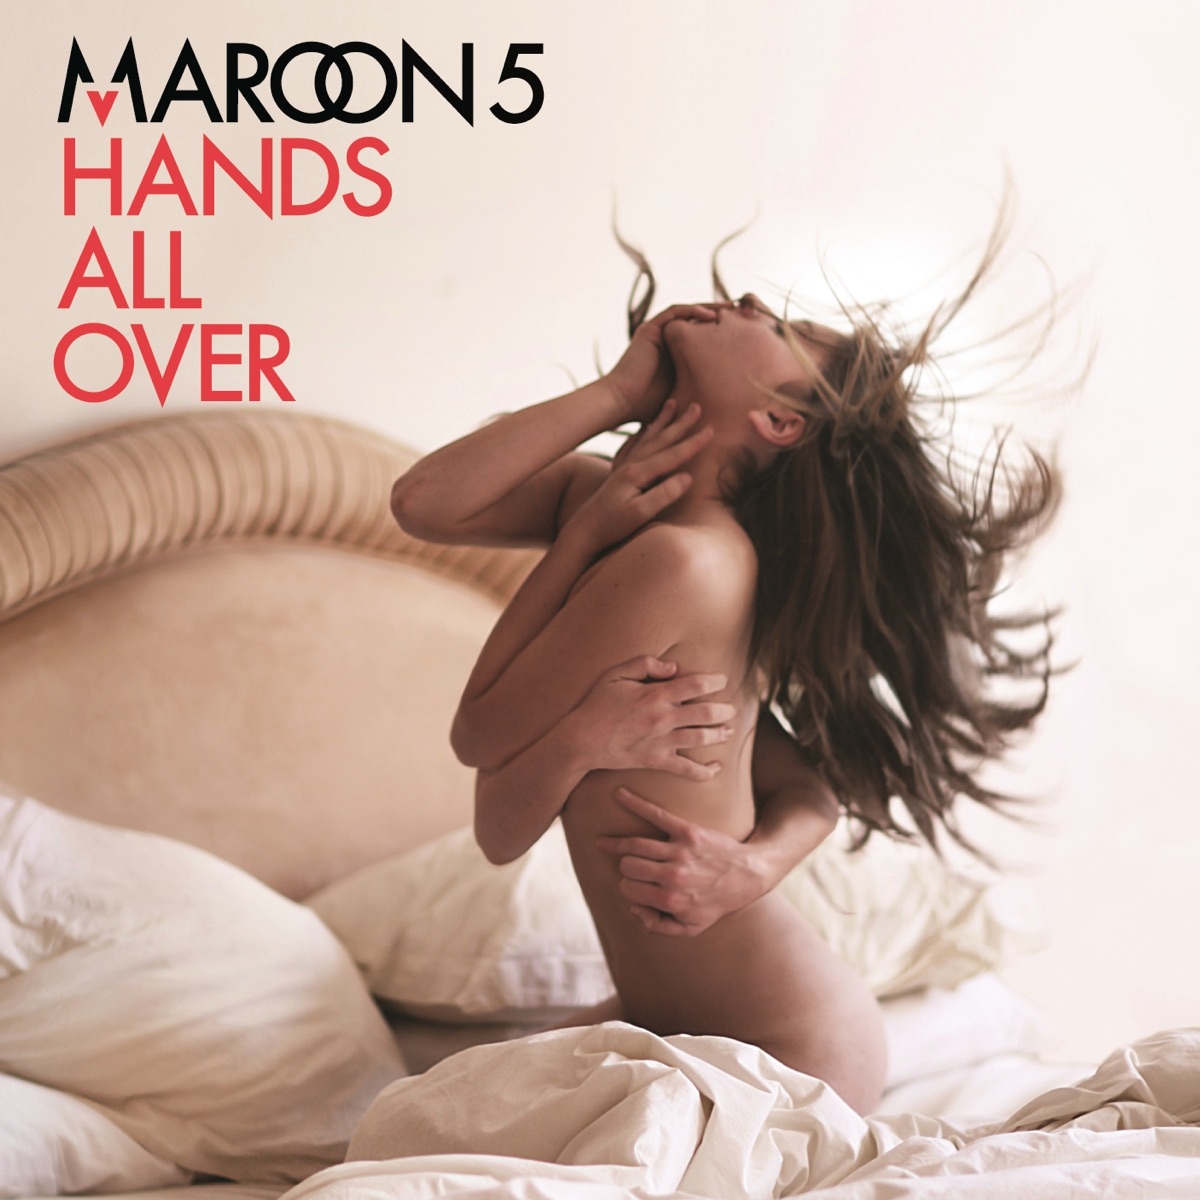 Hands All Over Deluxe Edition Maroon 5 CD cover